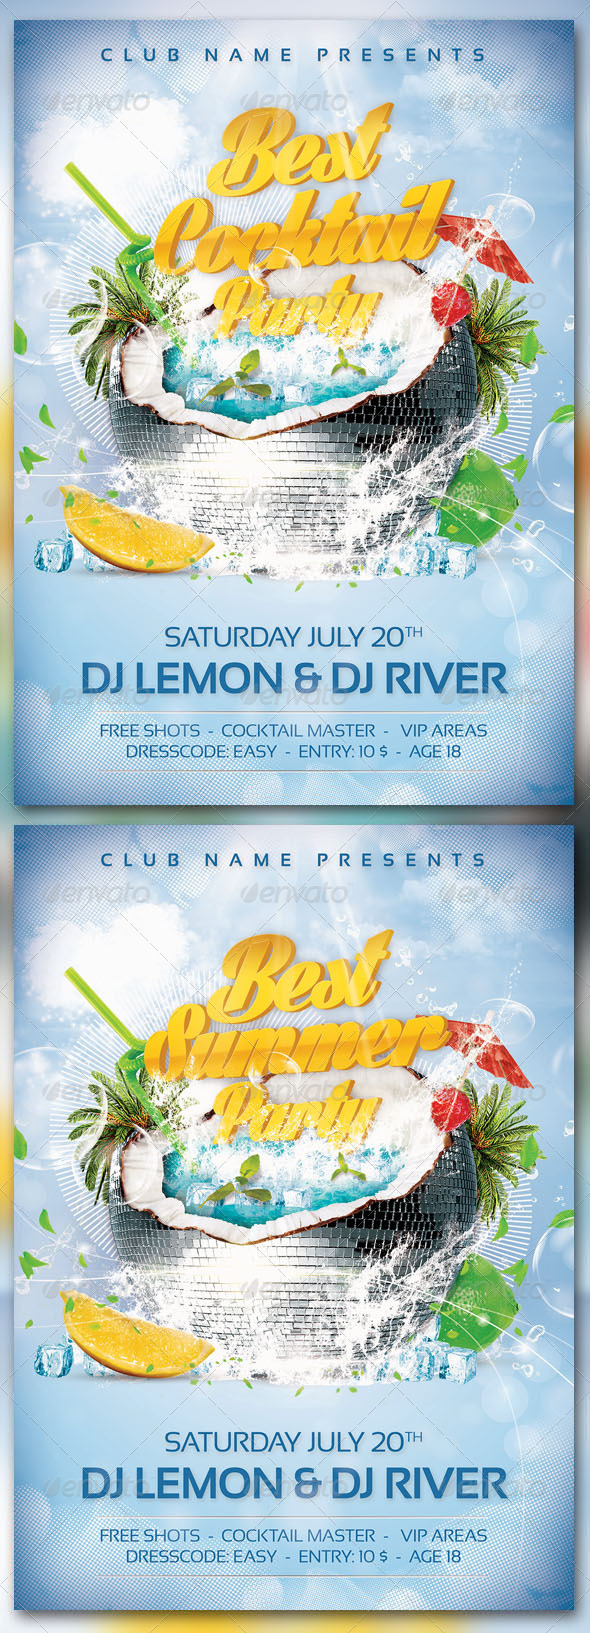 Best Summer-Cocktail Party - Events Flyers